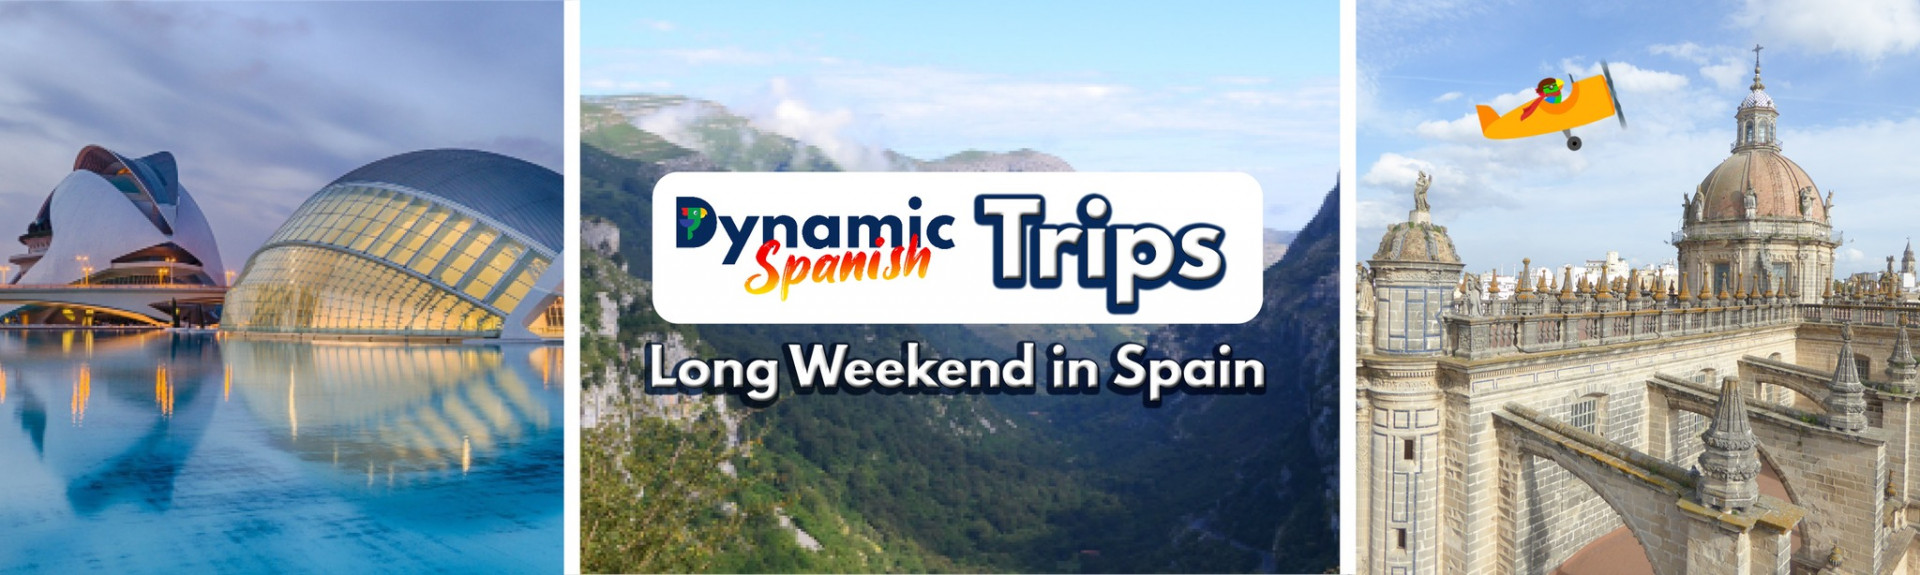 Dynamic Spanish Trips - Long Weekend in Spain